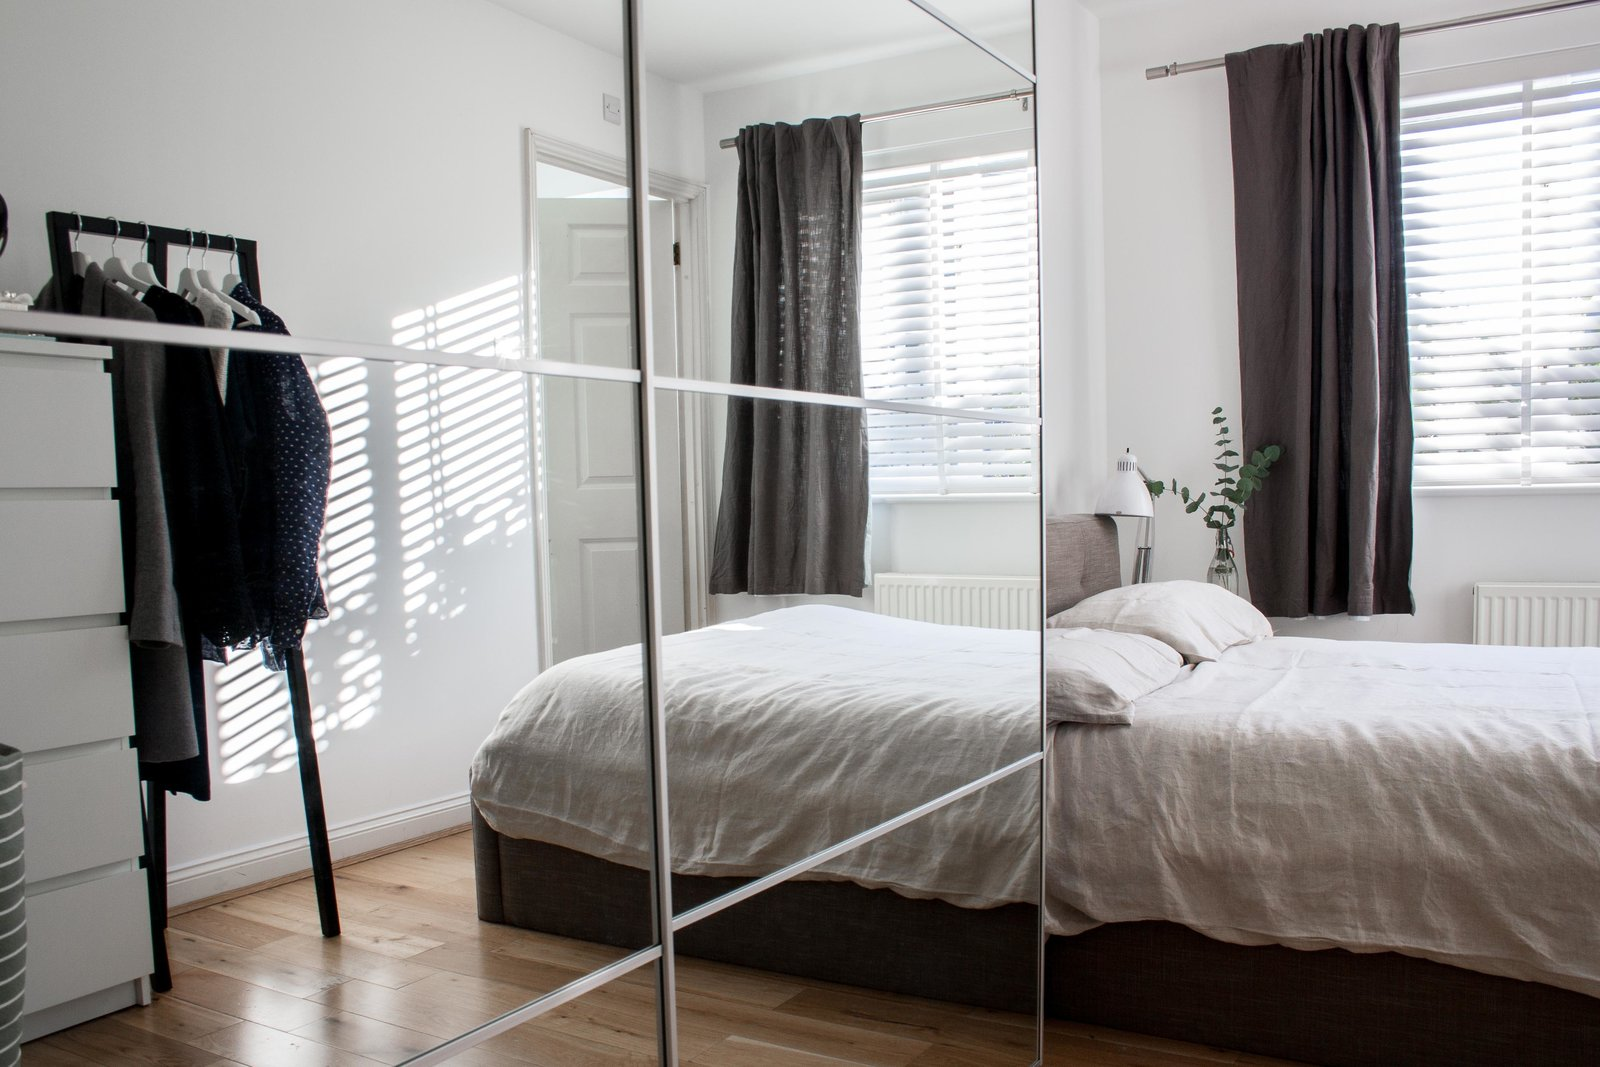 Bedroom, Bed, Night Stands, Lamps, Table Lighting, Light Hardwood Floor, and Wardrobe To create more storage and make the small bedroom feel larger, they purchased an Ikea wardrobe with mirrored doors. The clothing rack across from the bed is from HAY.  Photo 6 of 8 in Two Architects Revive Their London Flat With Minimal Furnishings and a Fresh Dose of White